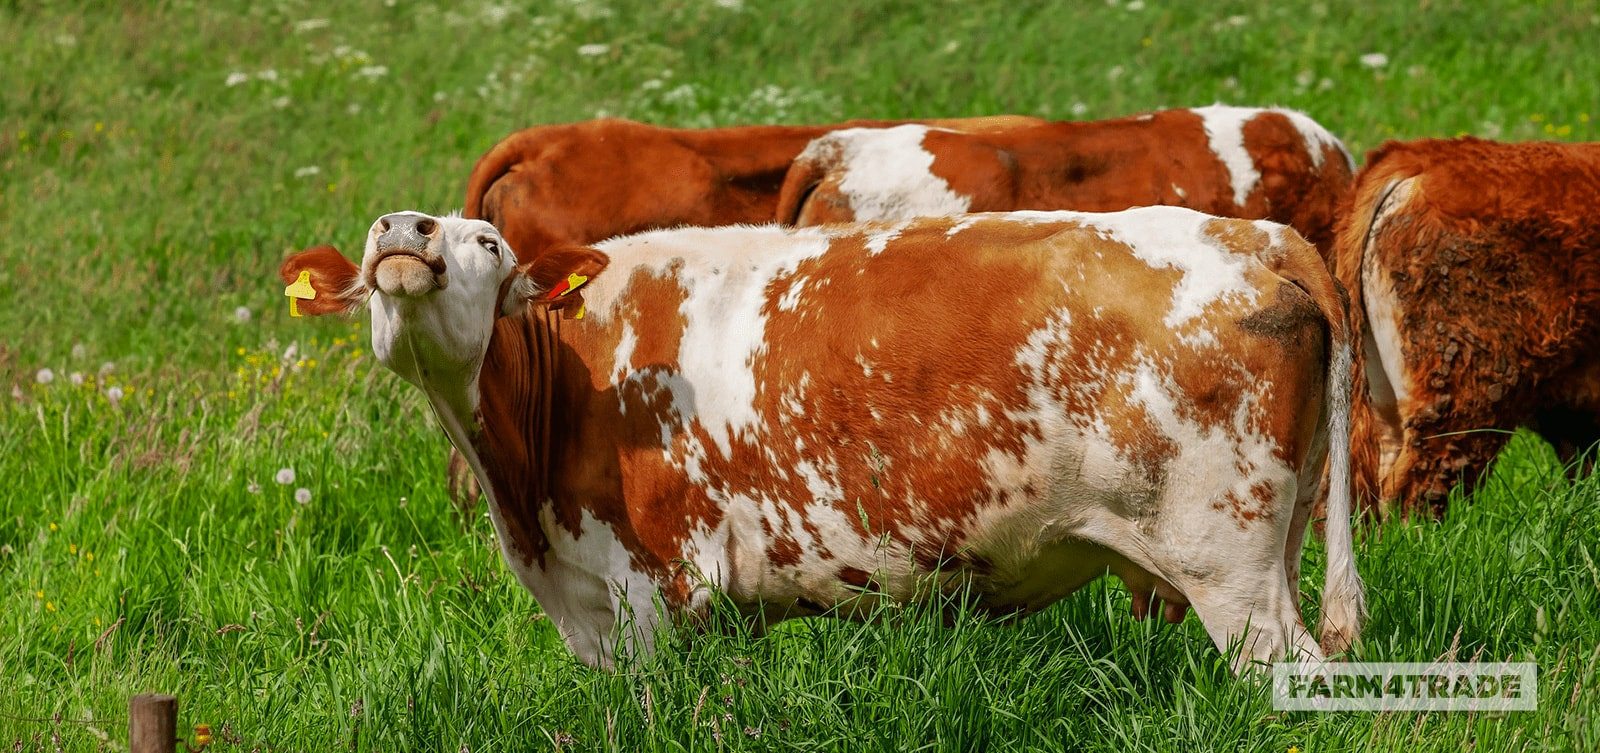 Bloat in cattle common practices to reduce and prevent the disease-Farm4Trade